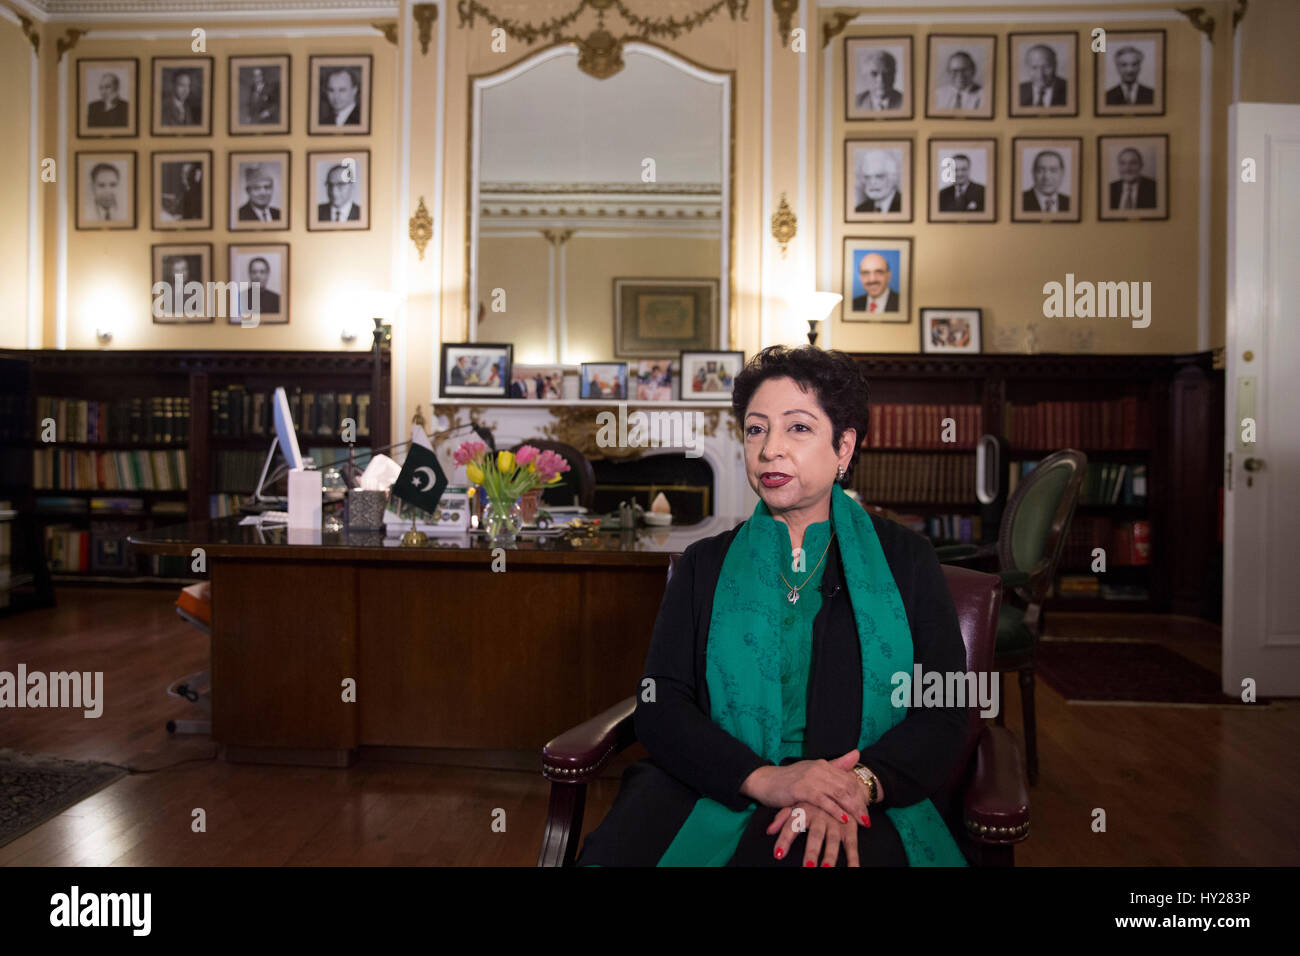 New York, USA. 28th Mar, 2017. Dr. Maleeha Lodhi, the permanent representative of Pakistan to the United Nations, - Stock Image